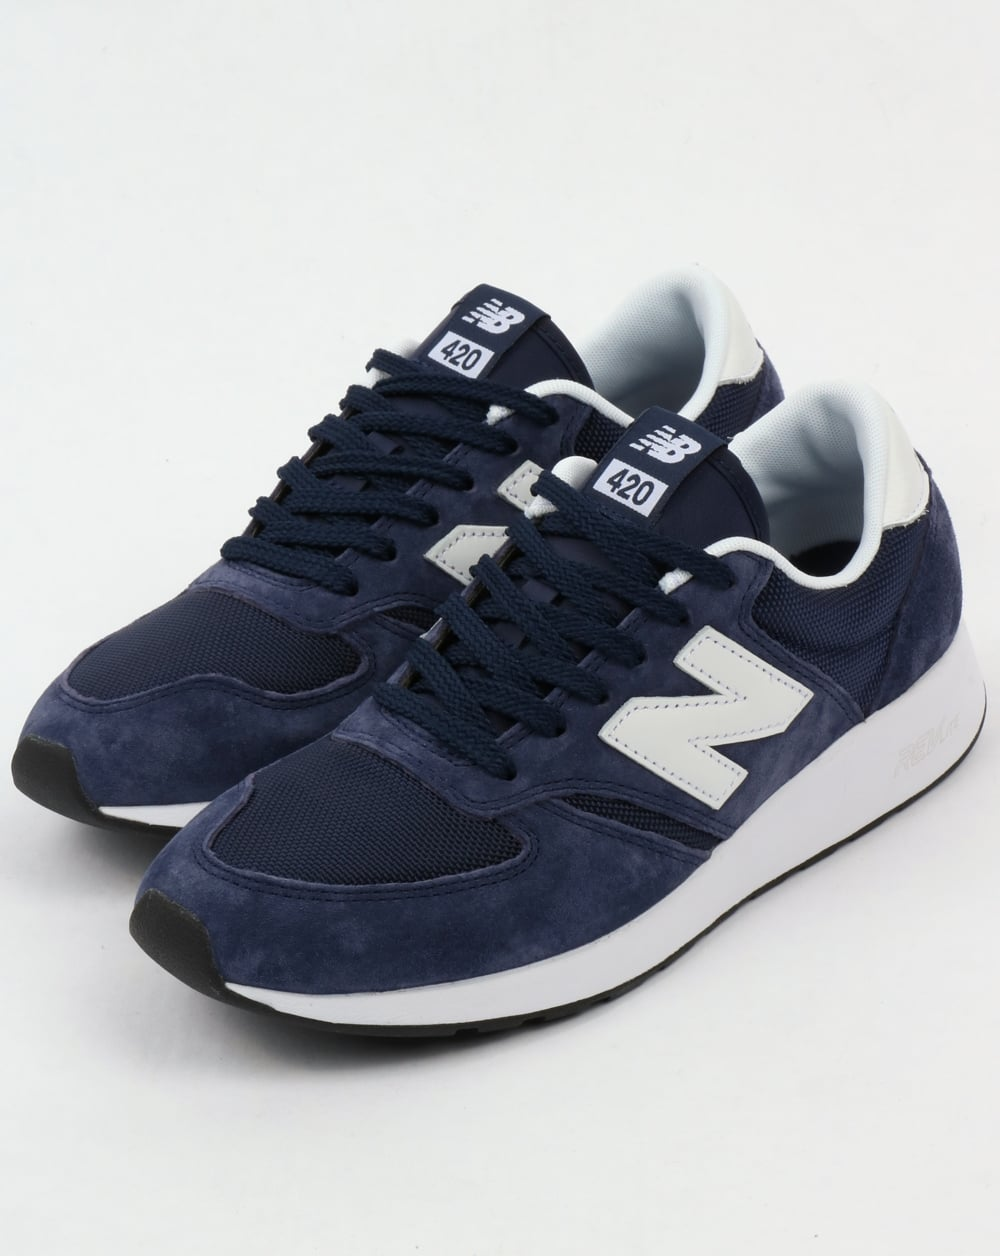 new balance 420 re engineered trainers navy shoes running 70s. Black Bedroom Furniture Sets. Home Design Ideas